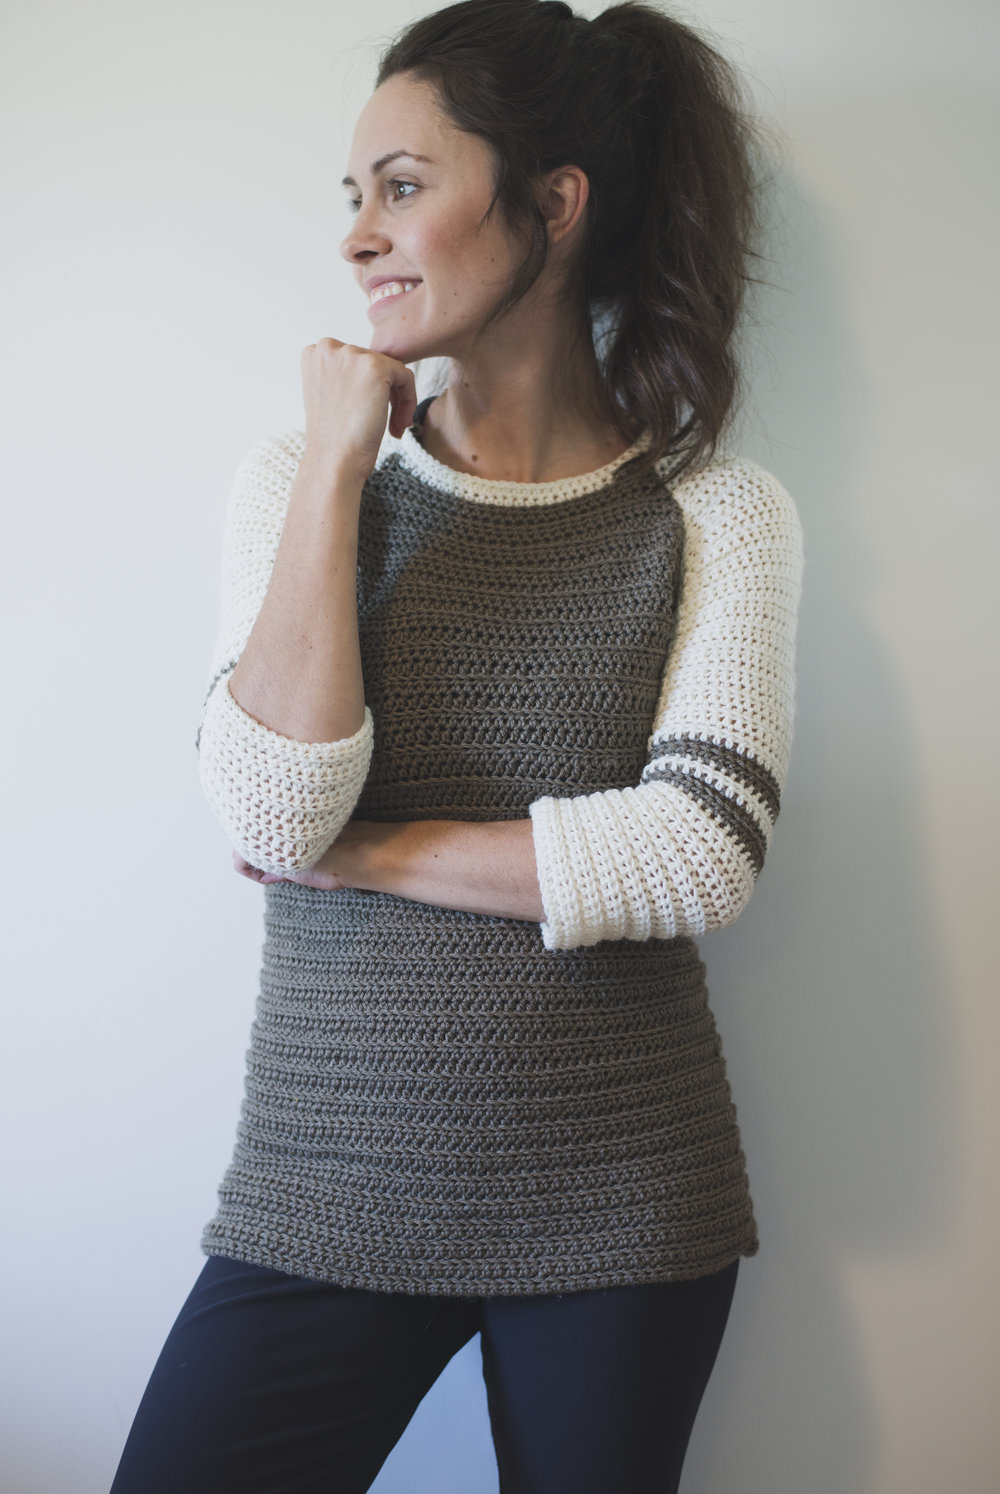 New Free Crochet Pattern for the Varsity Sweater! — Megmade with Love